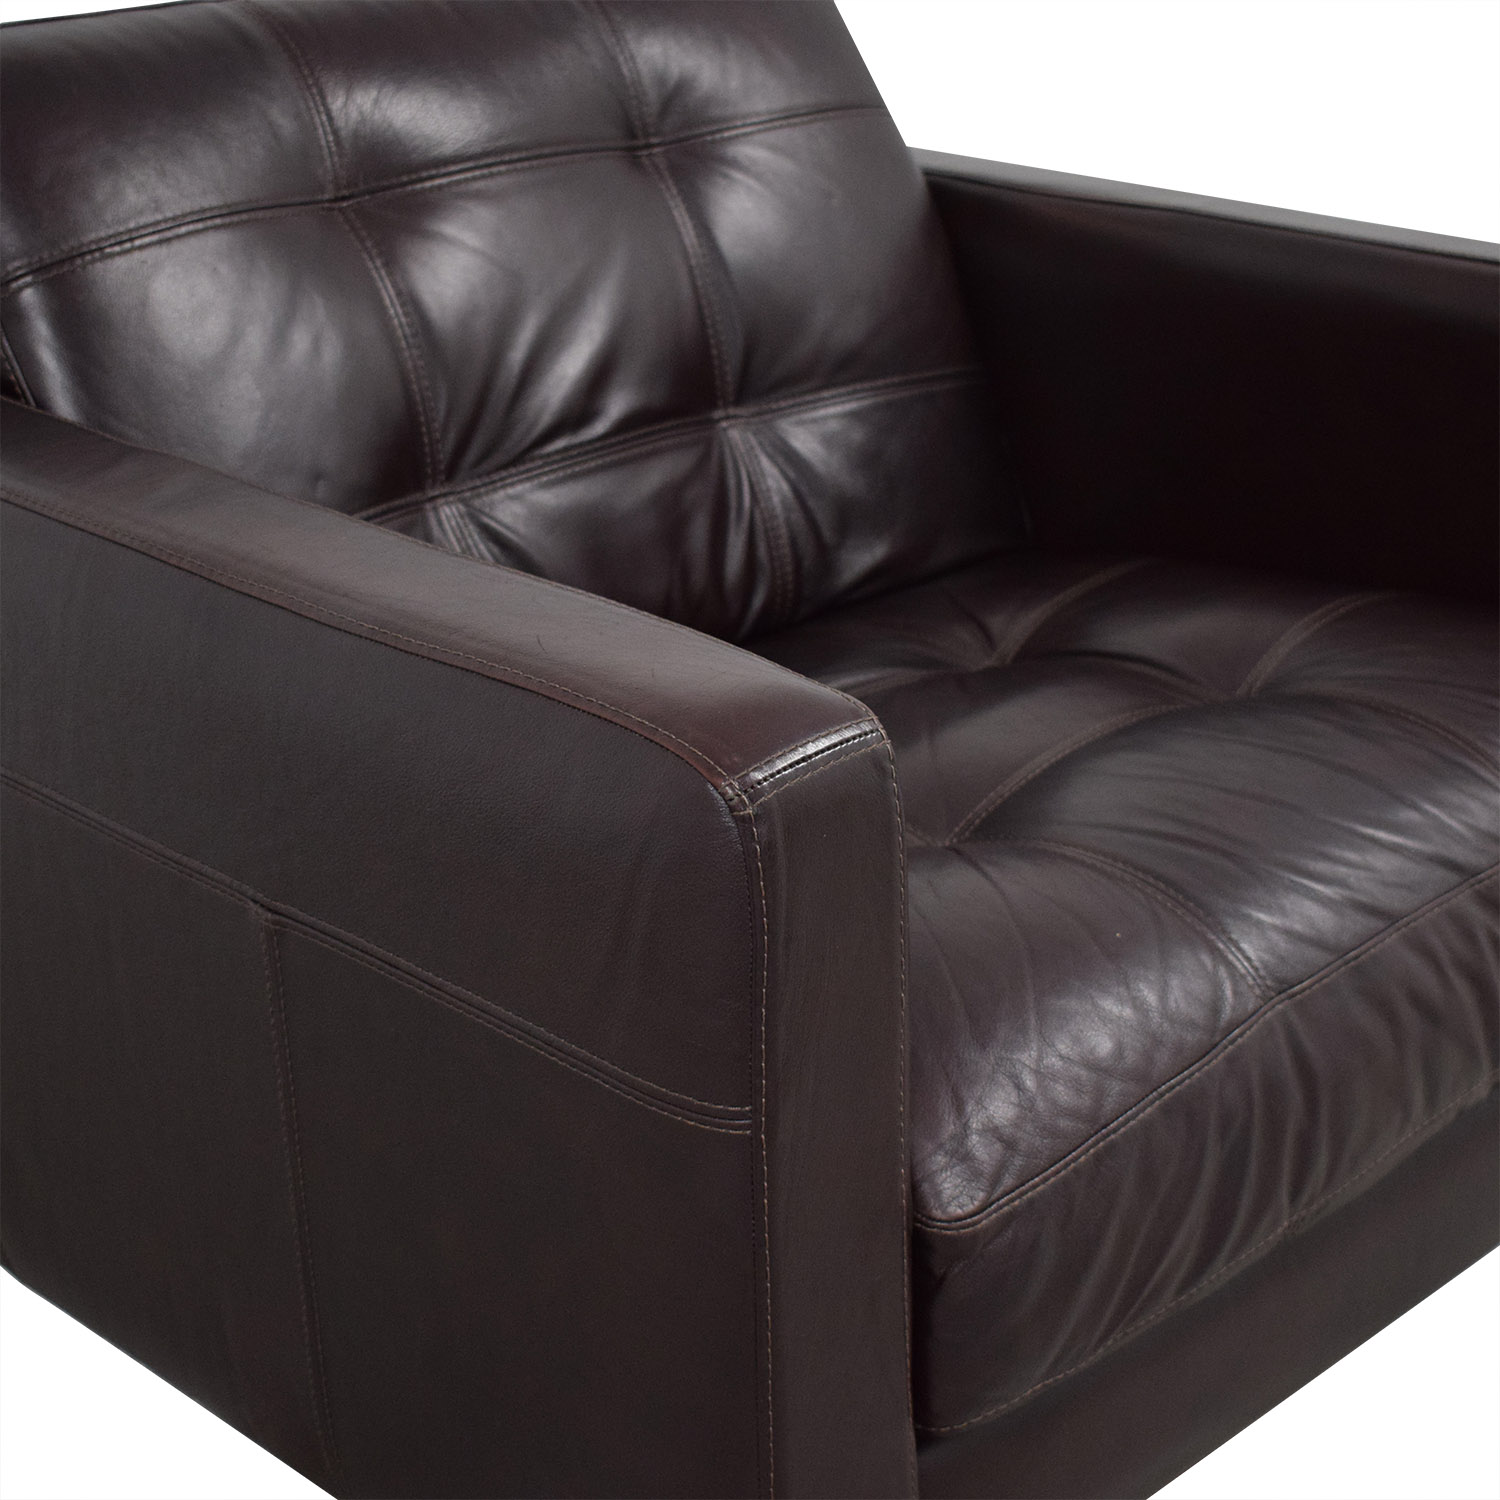 Chateau d'Ax Chateaux  d'Ax Tufted Lounge Chair on sale